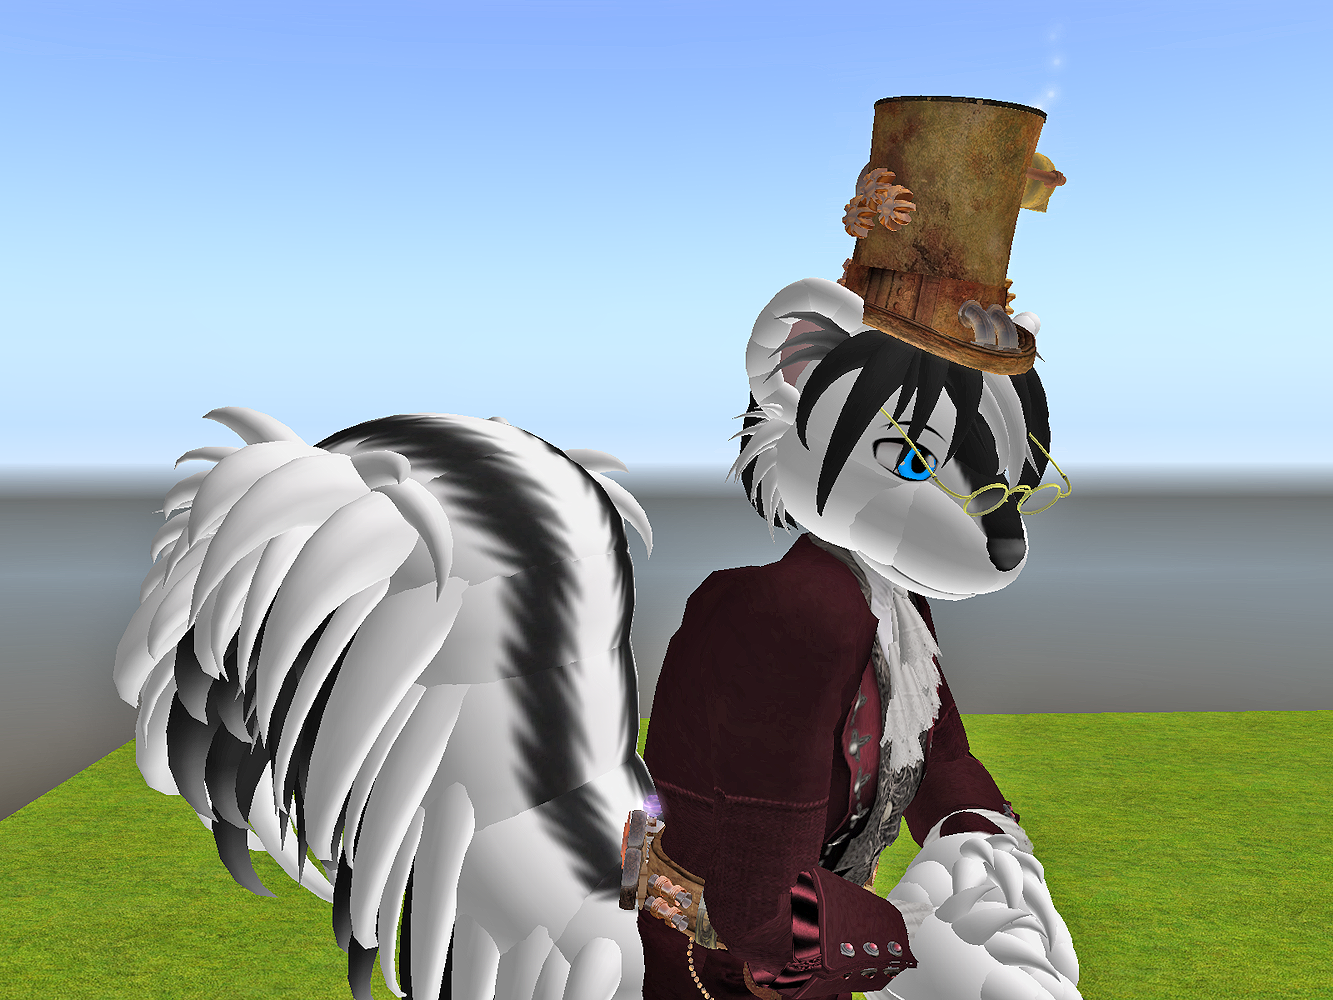 Roger at second life #1